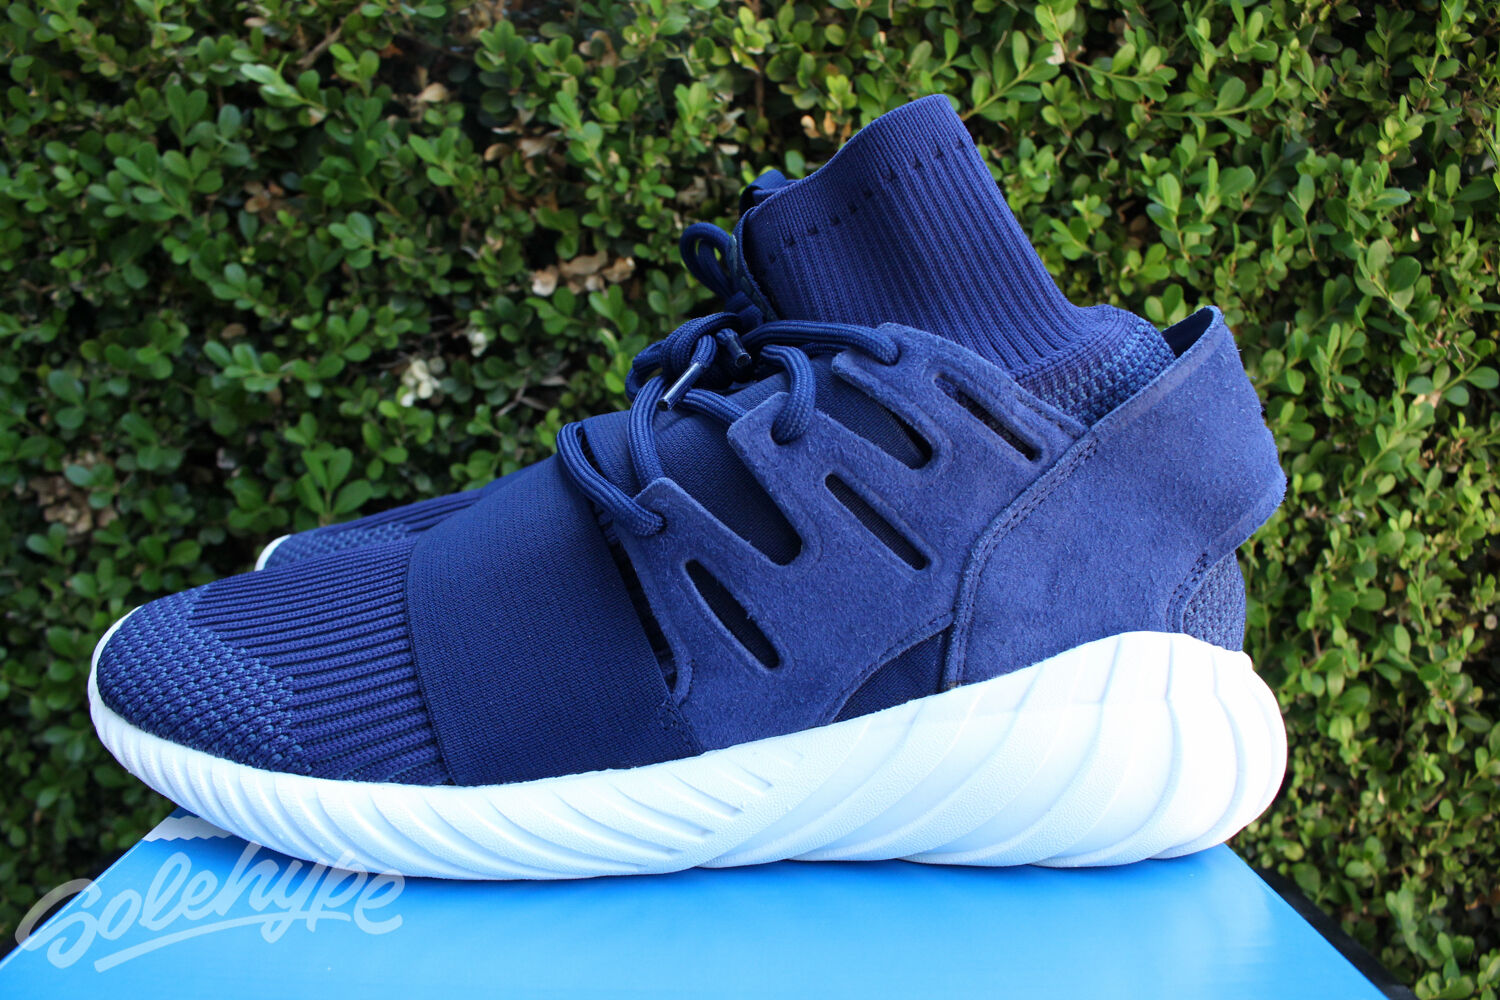 ADIDAS TUBULAR DOOM PK PRIMEKNIT SZ 11 NIGHT MARINE WHITE NAVY BLUE WHITE MARINE S80103 8dc401